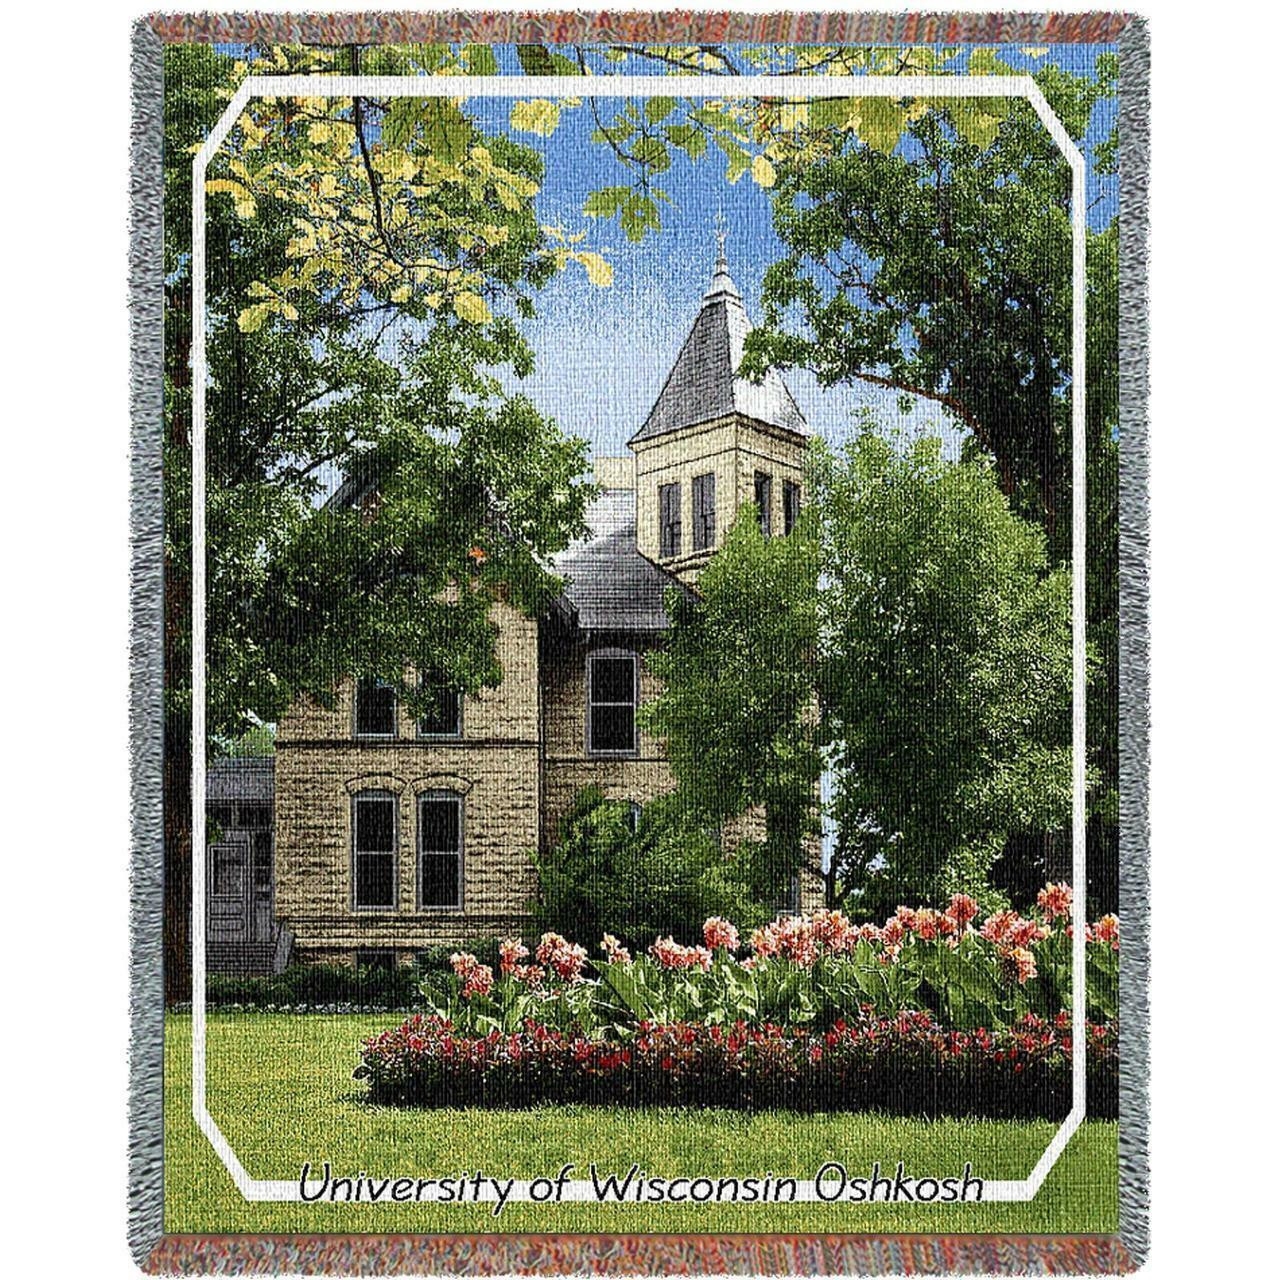 University of Wisconsin OSHKOSH Campus Stadium Tapisserie Afghan Throw Blanket